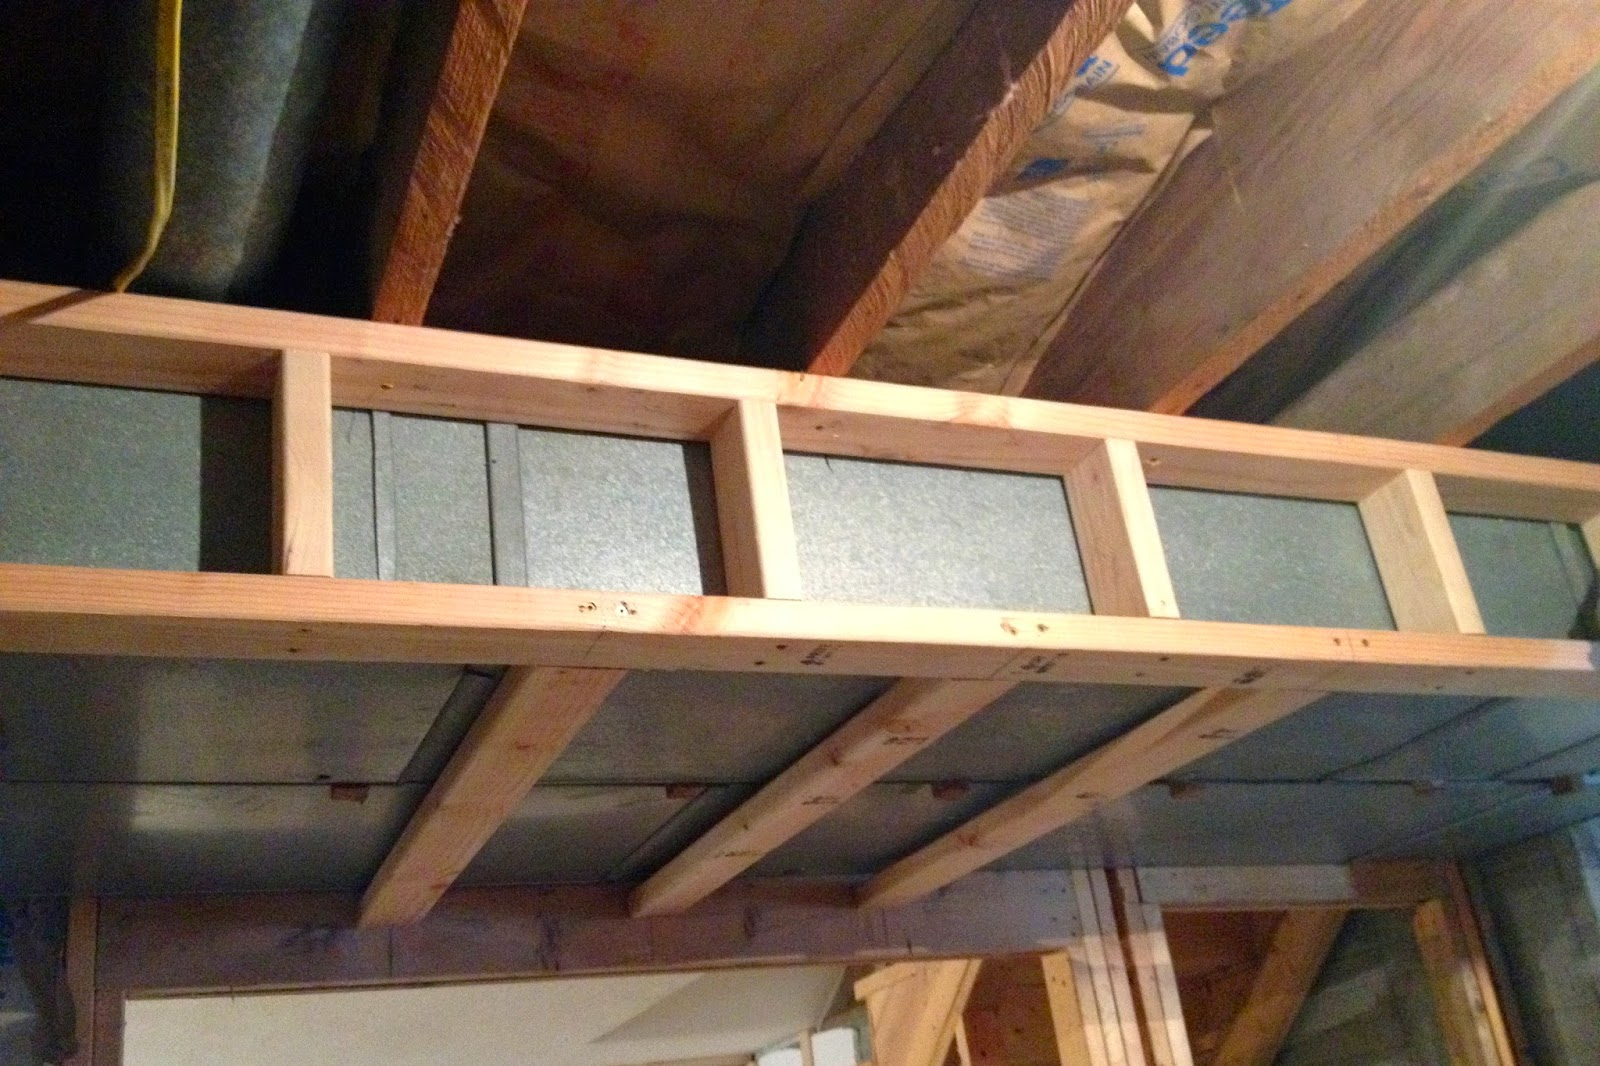 diy why spend more framing around ductwork in a basement